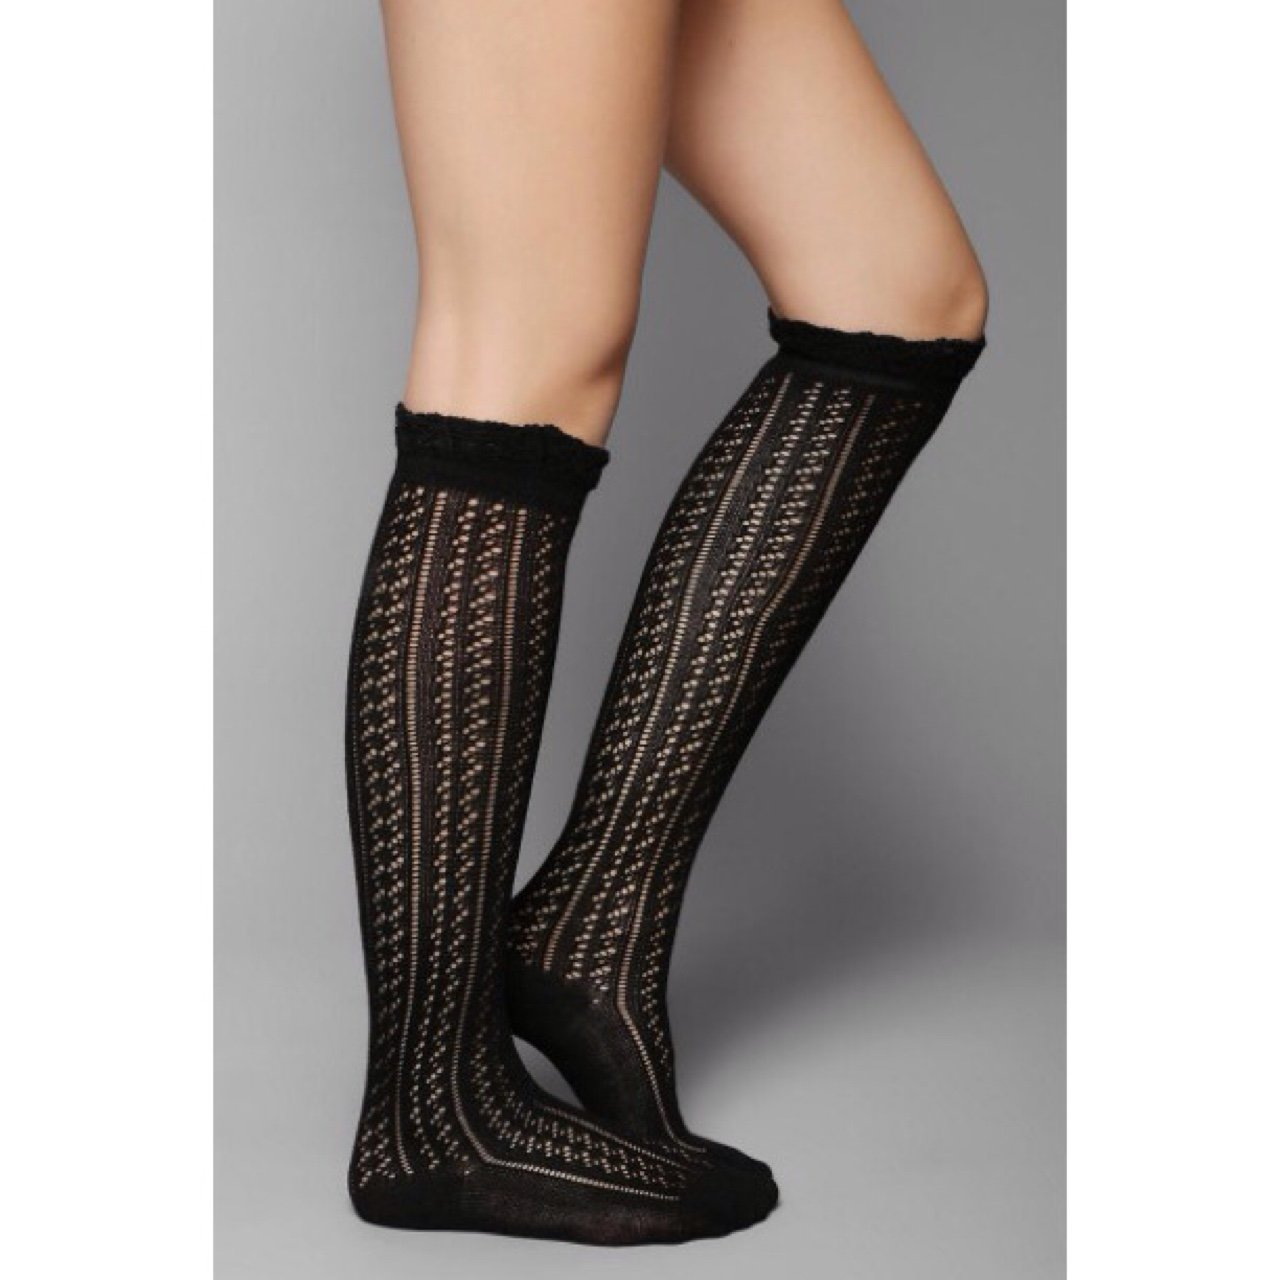 b0884ce5639 NWT Urban Outfitters Black Knit Knee High Socks with Ruffle - Depop